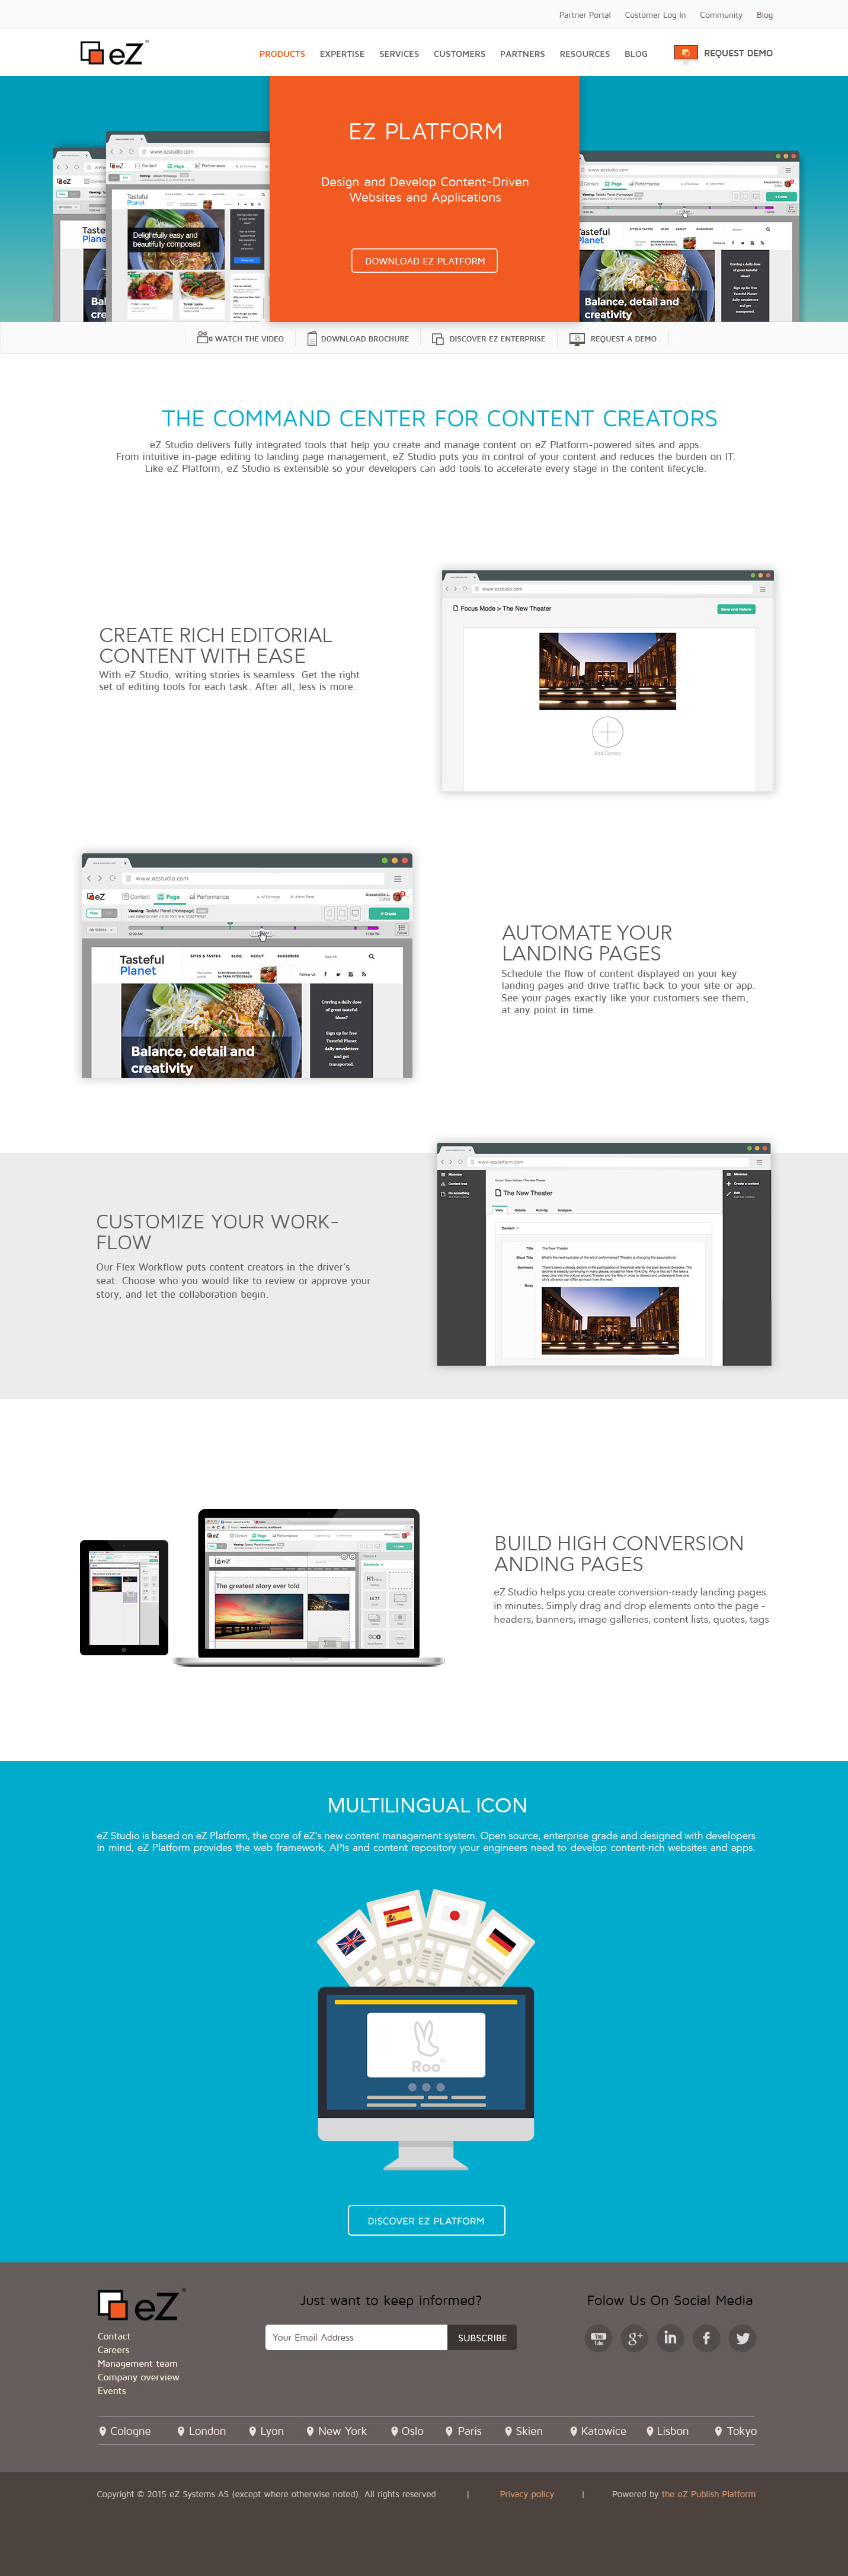 Landing Page and Illustration